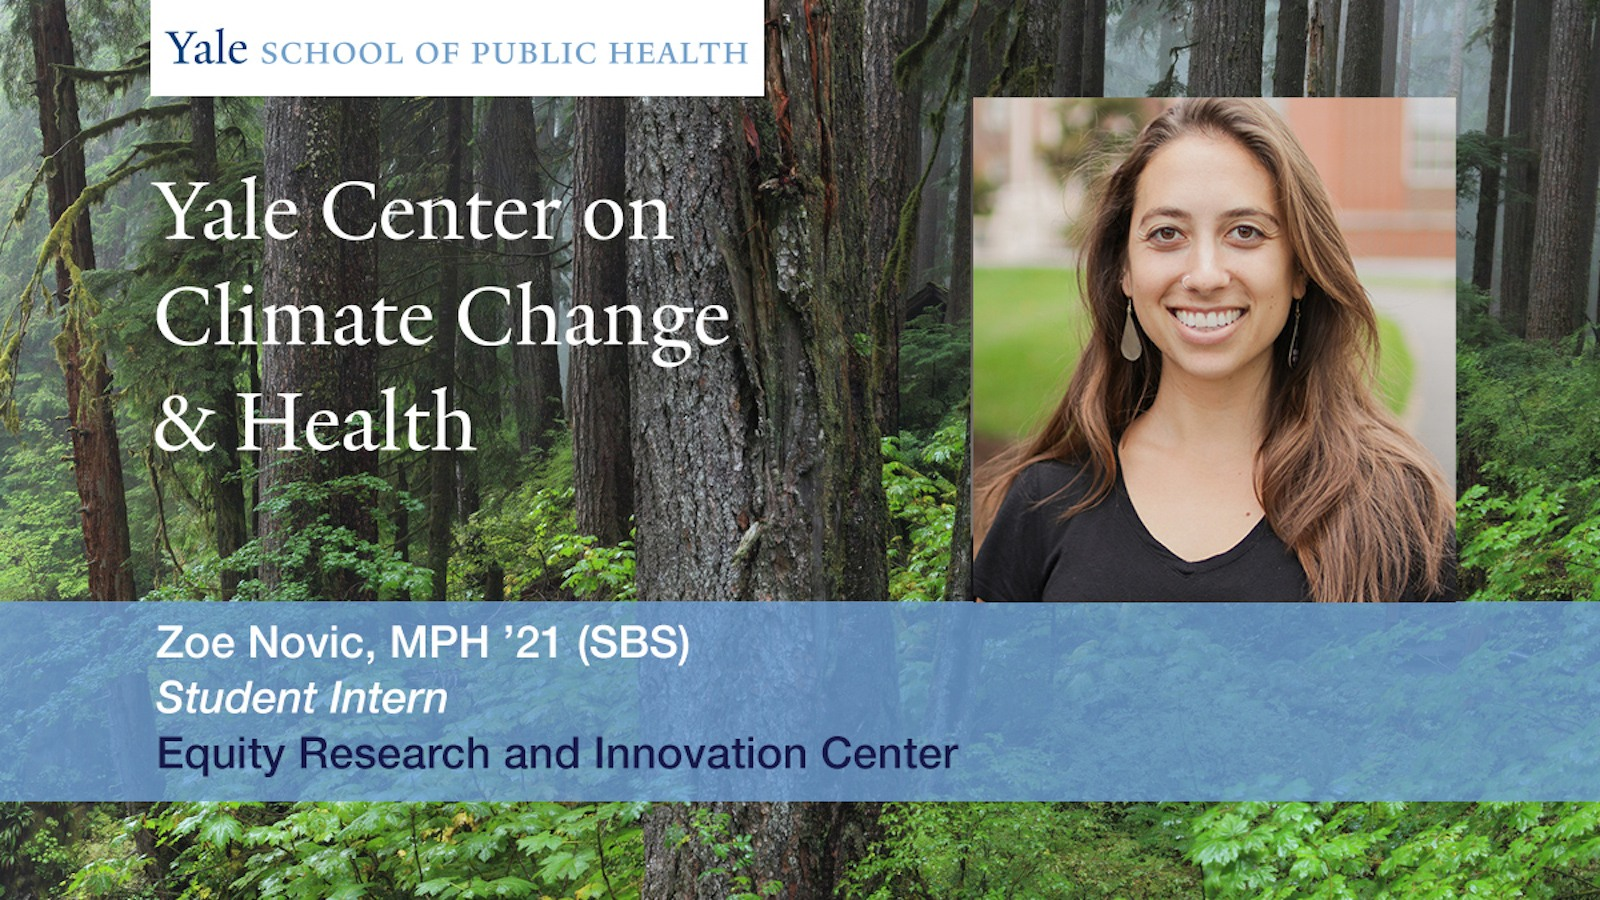 Yale Center for Climate Change & Health intern Zoe Novic, MPH '21 (SBS)